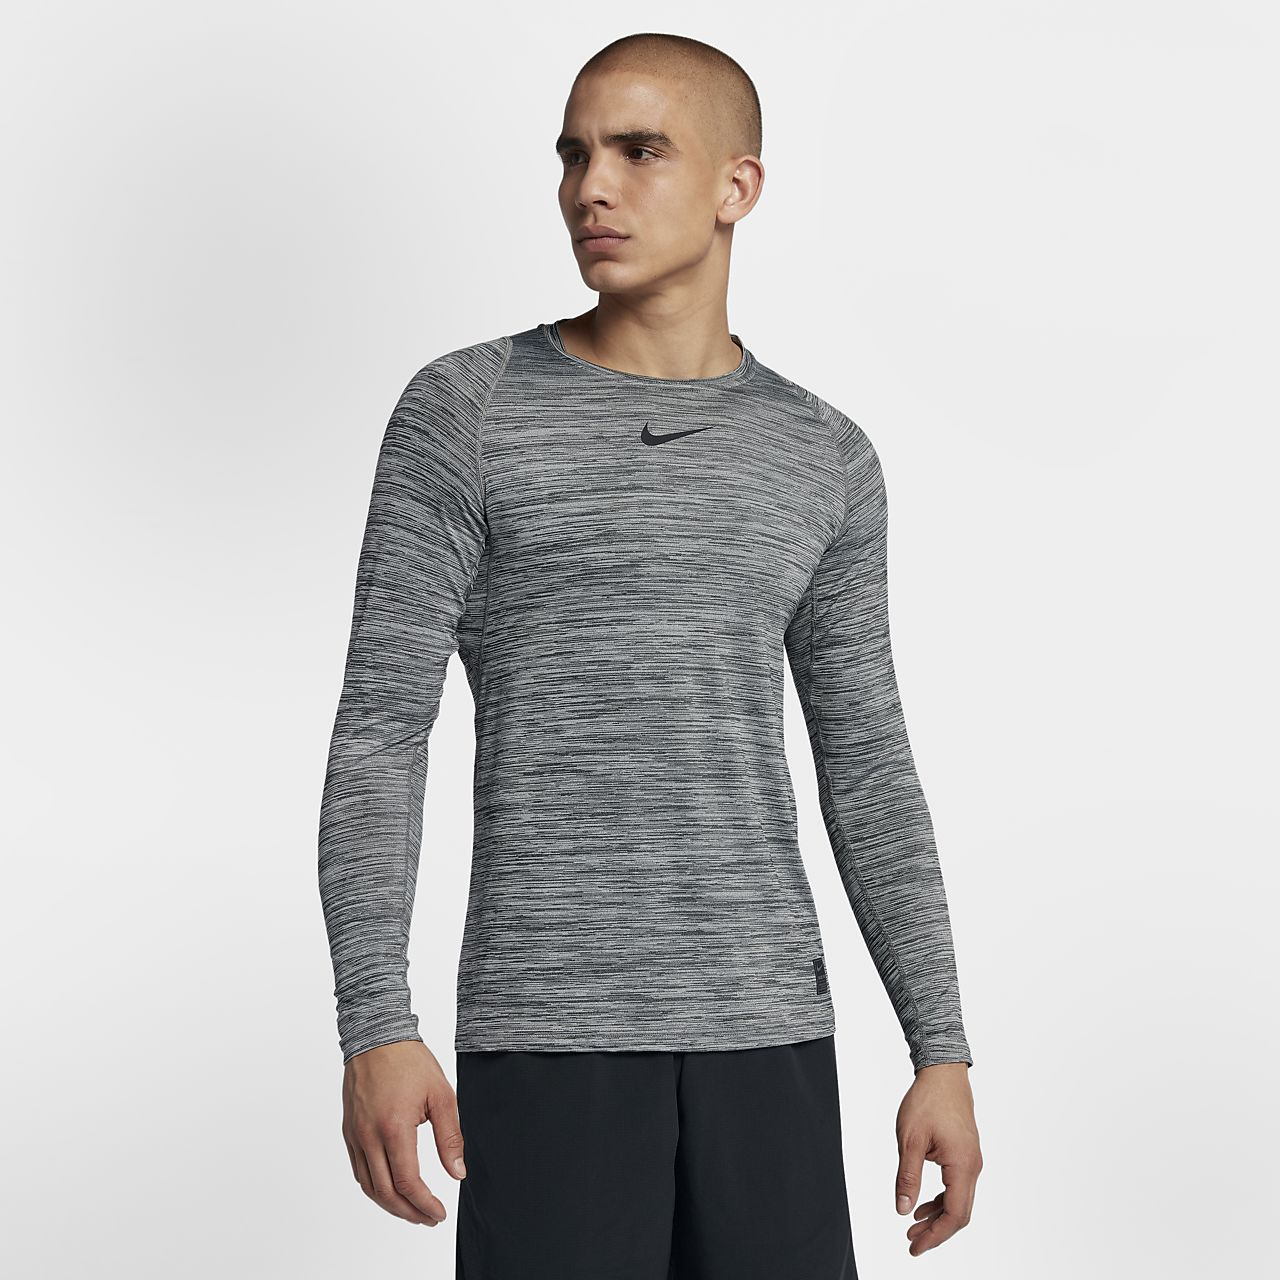 4efde0e9 Nike Pro Fitted Men's Long Sleeve Training Top. Nike.com